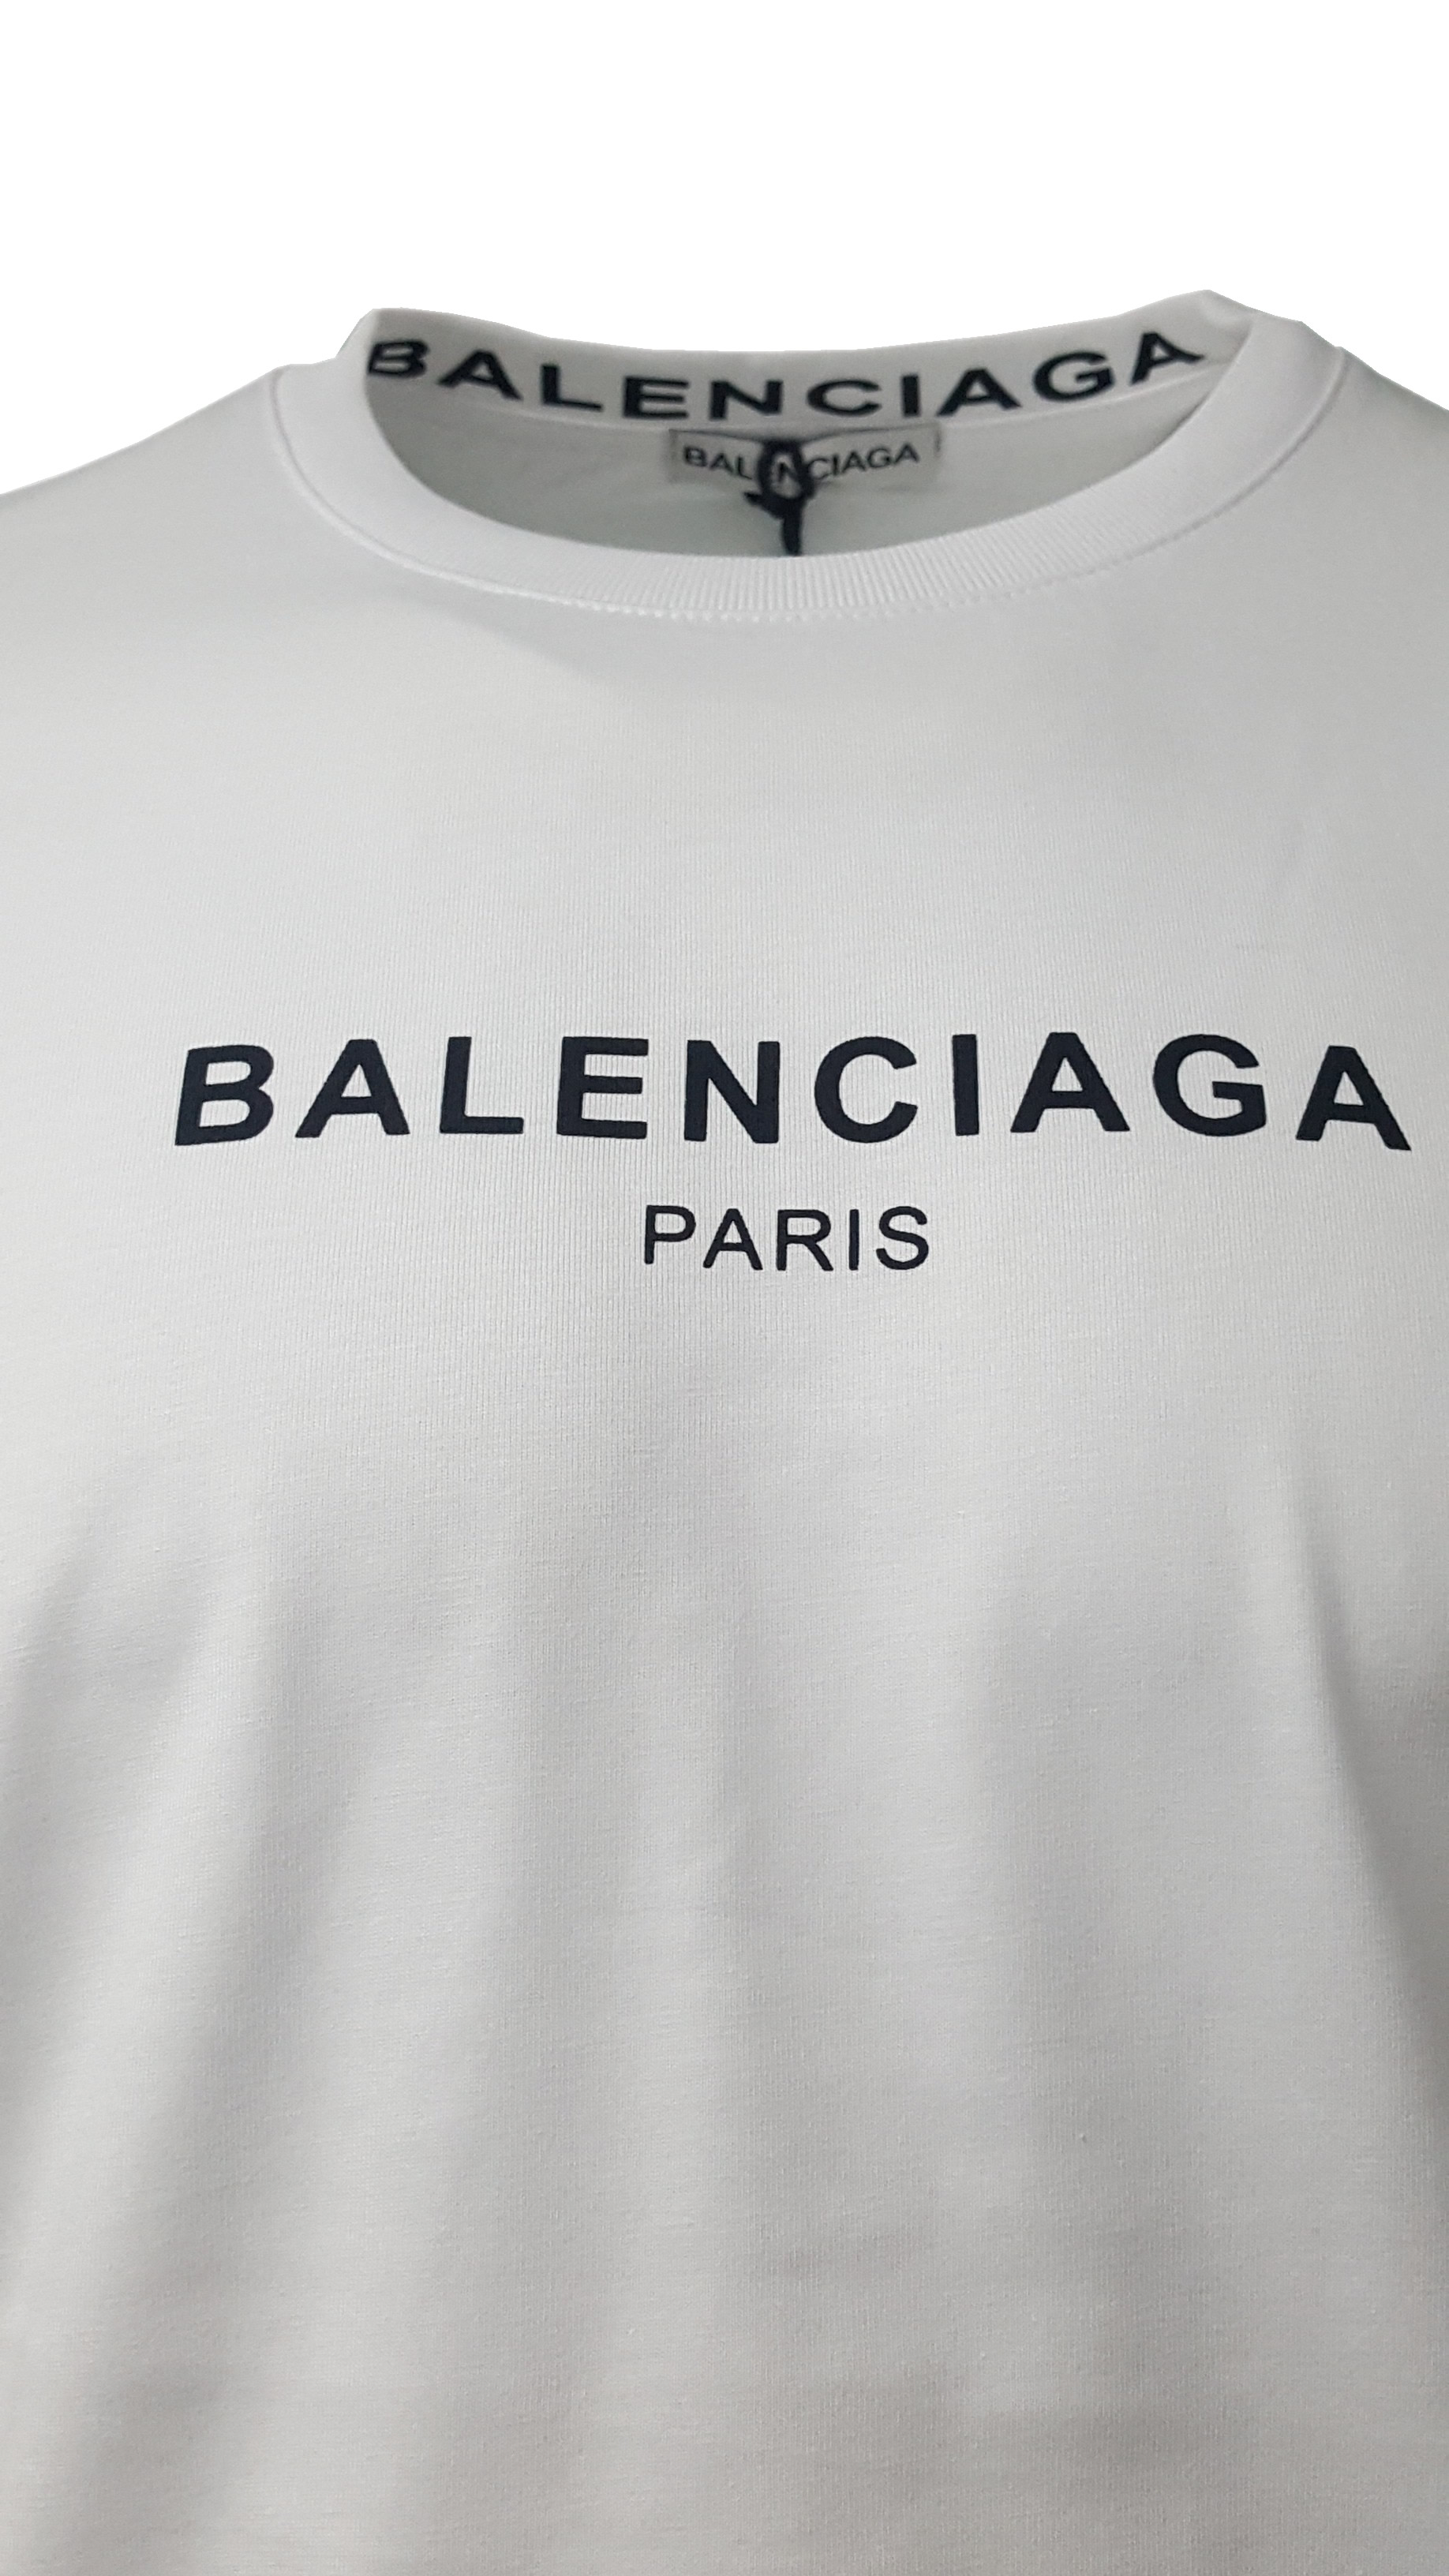 d670747e Balenciaga Short Sleeve Crew T Shirt. Paris Chest Print in White ...